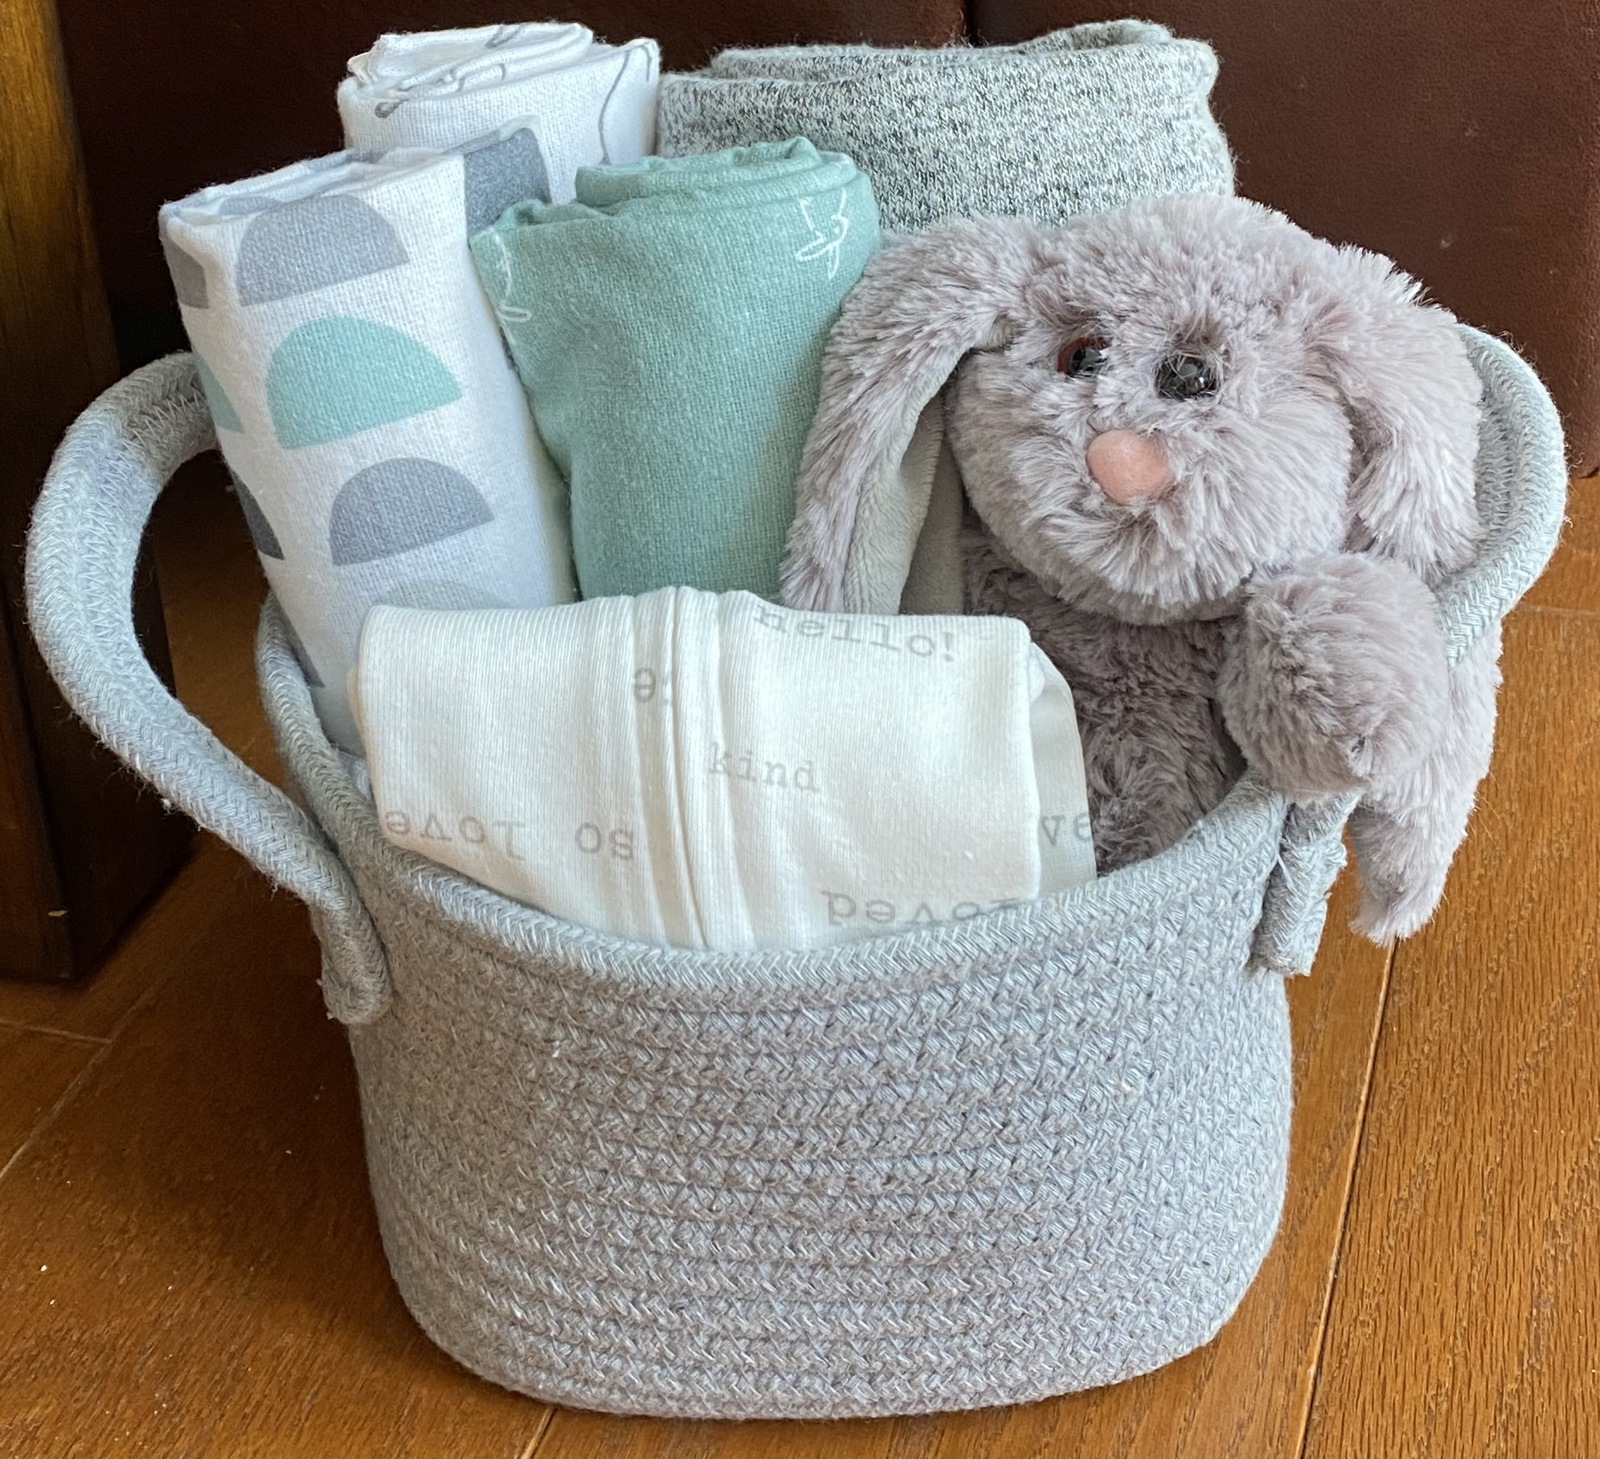 Primary image for Rowan Rabbit Baby Gift Basket- Small